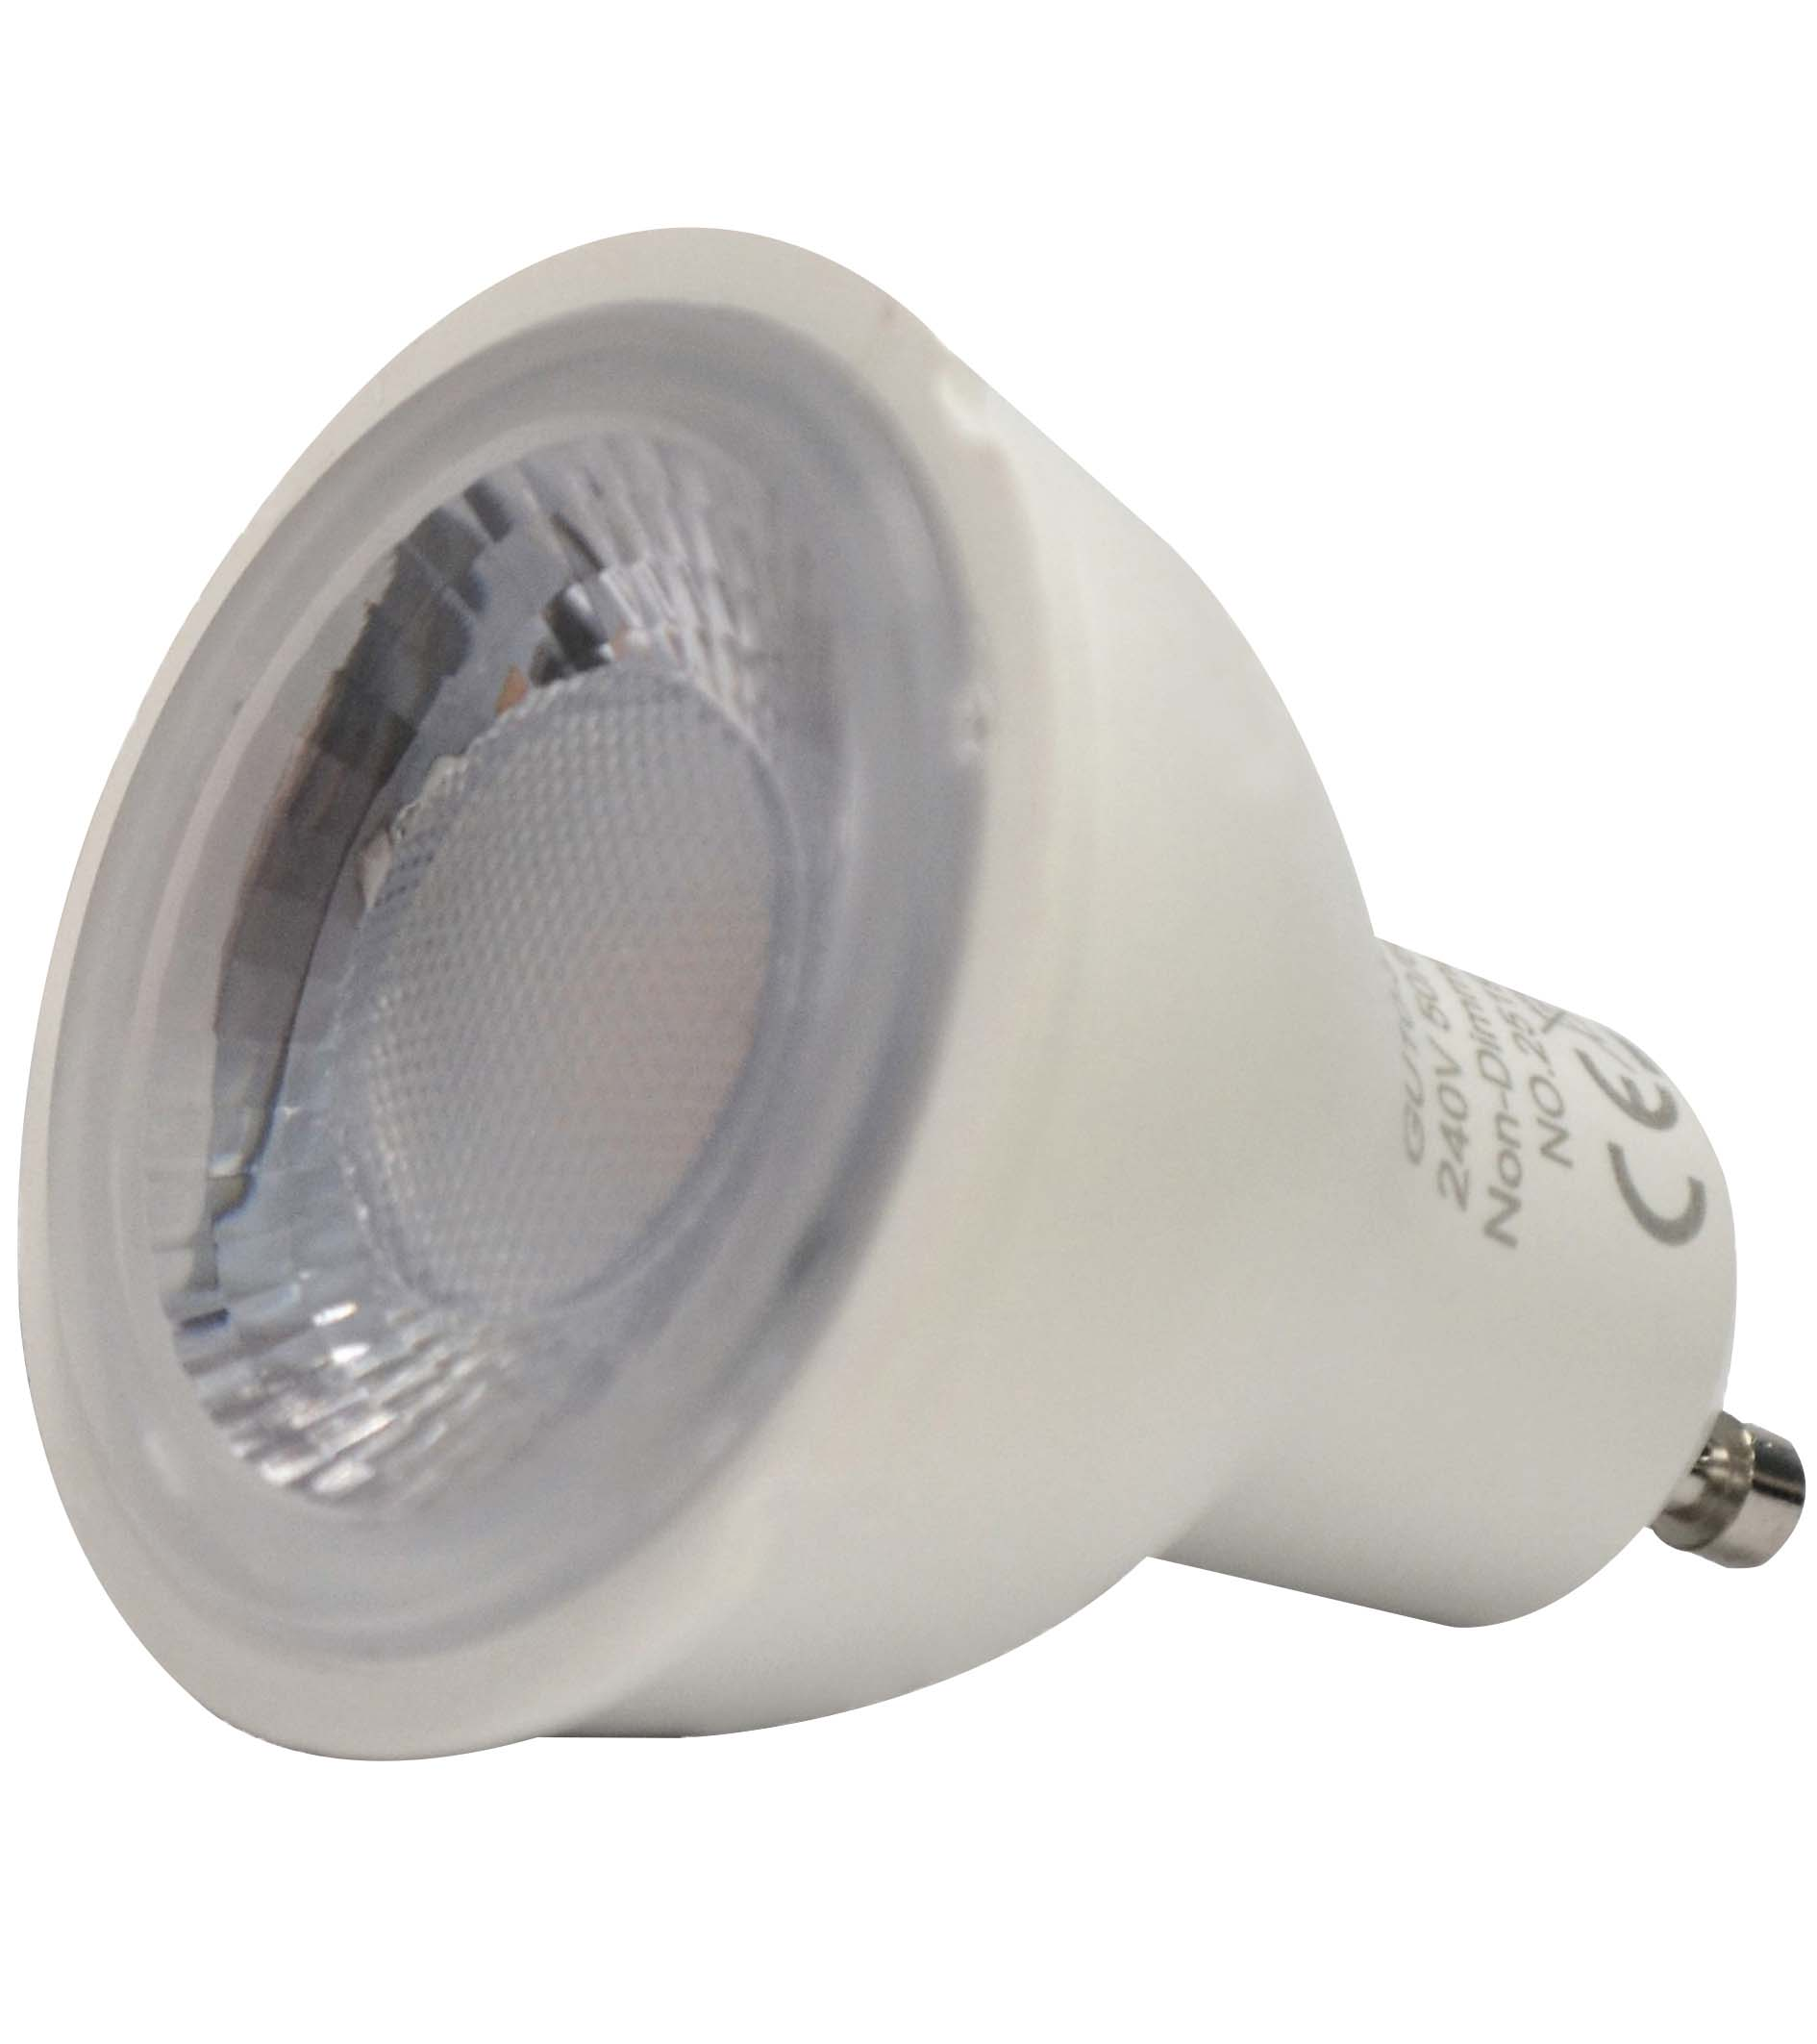 Led Gu10 5w Gu10 5w Smd Led Dimmable Leyton Lighting